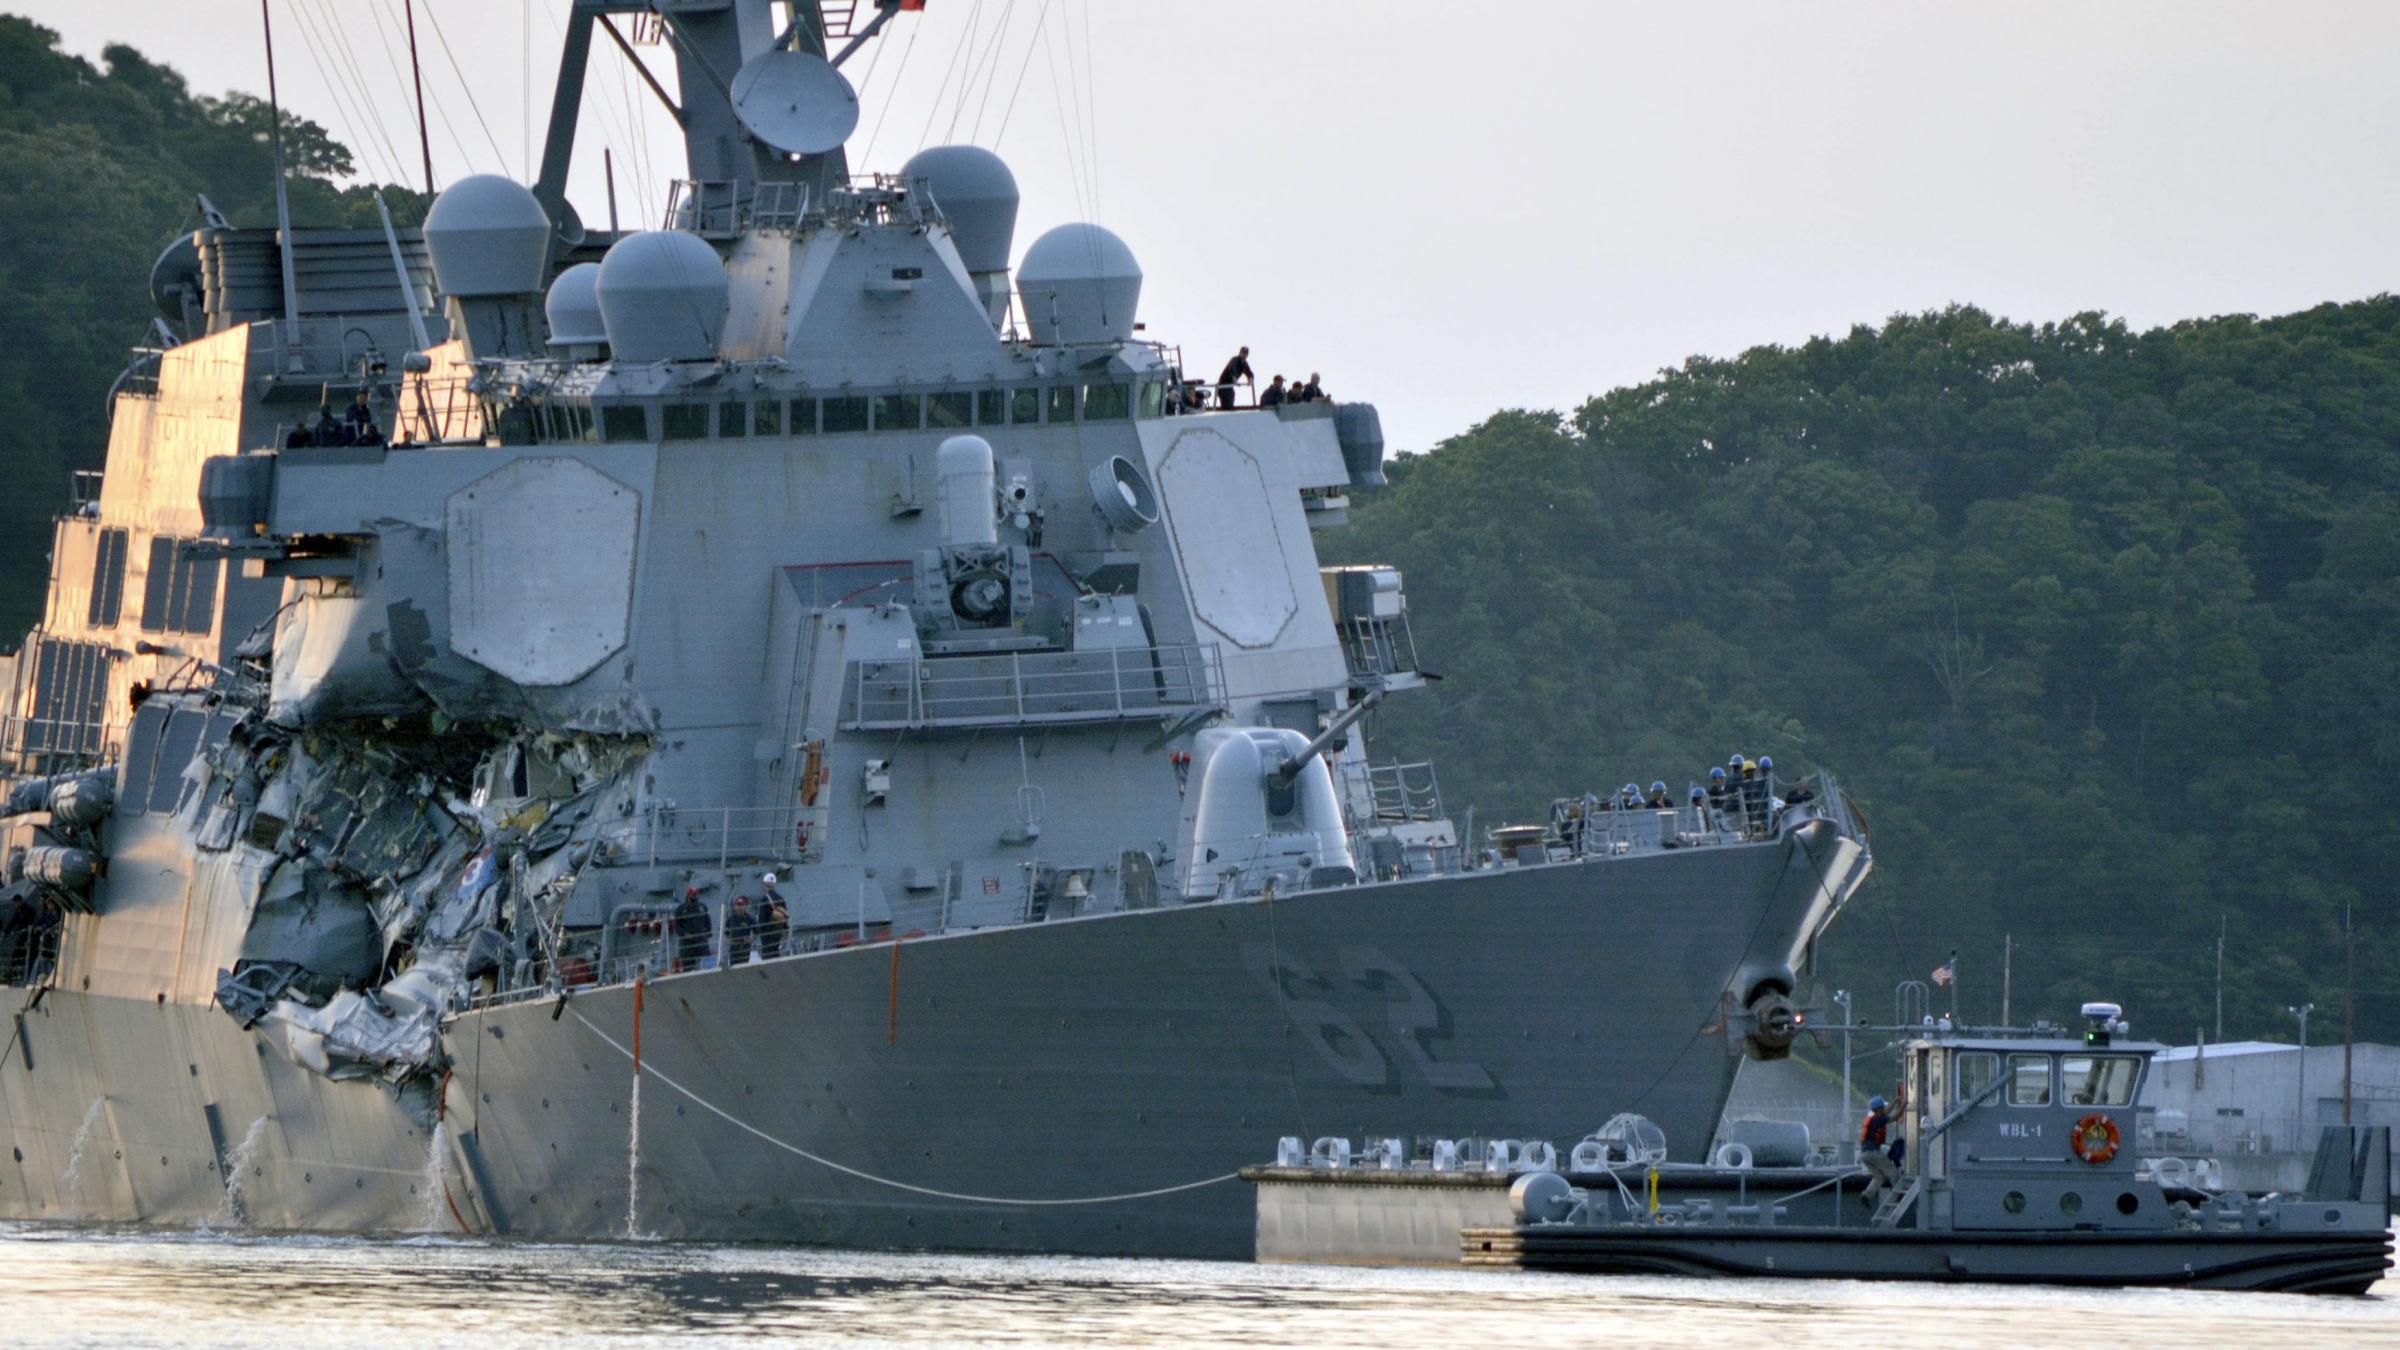 US Navy chief promises full probe of collision